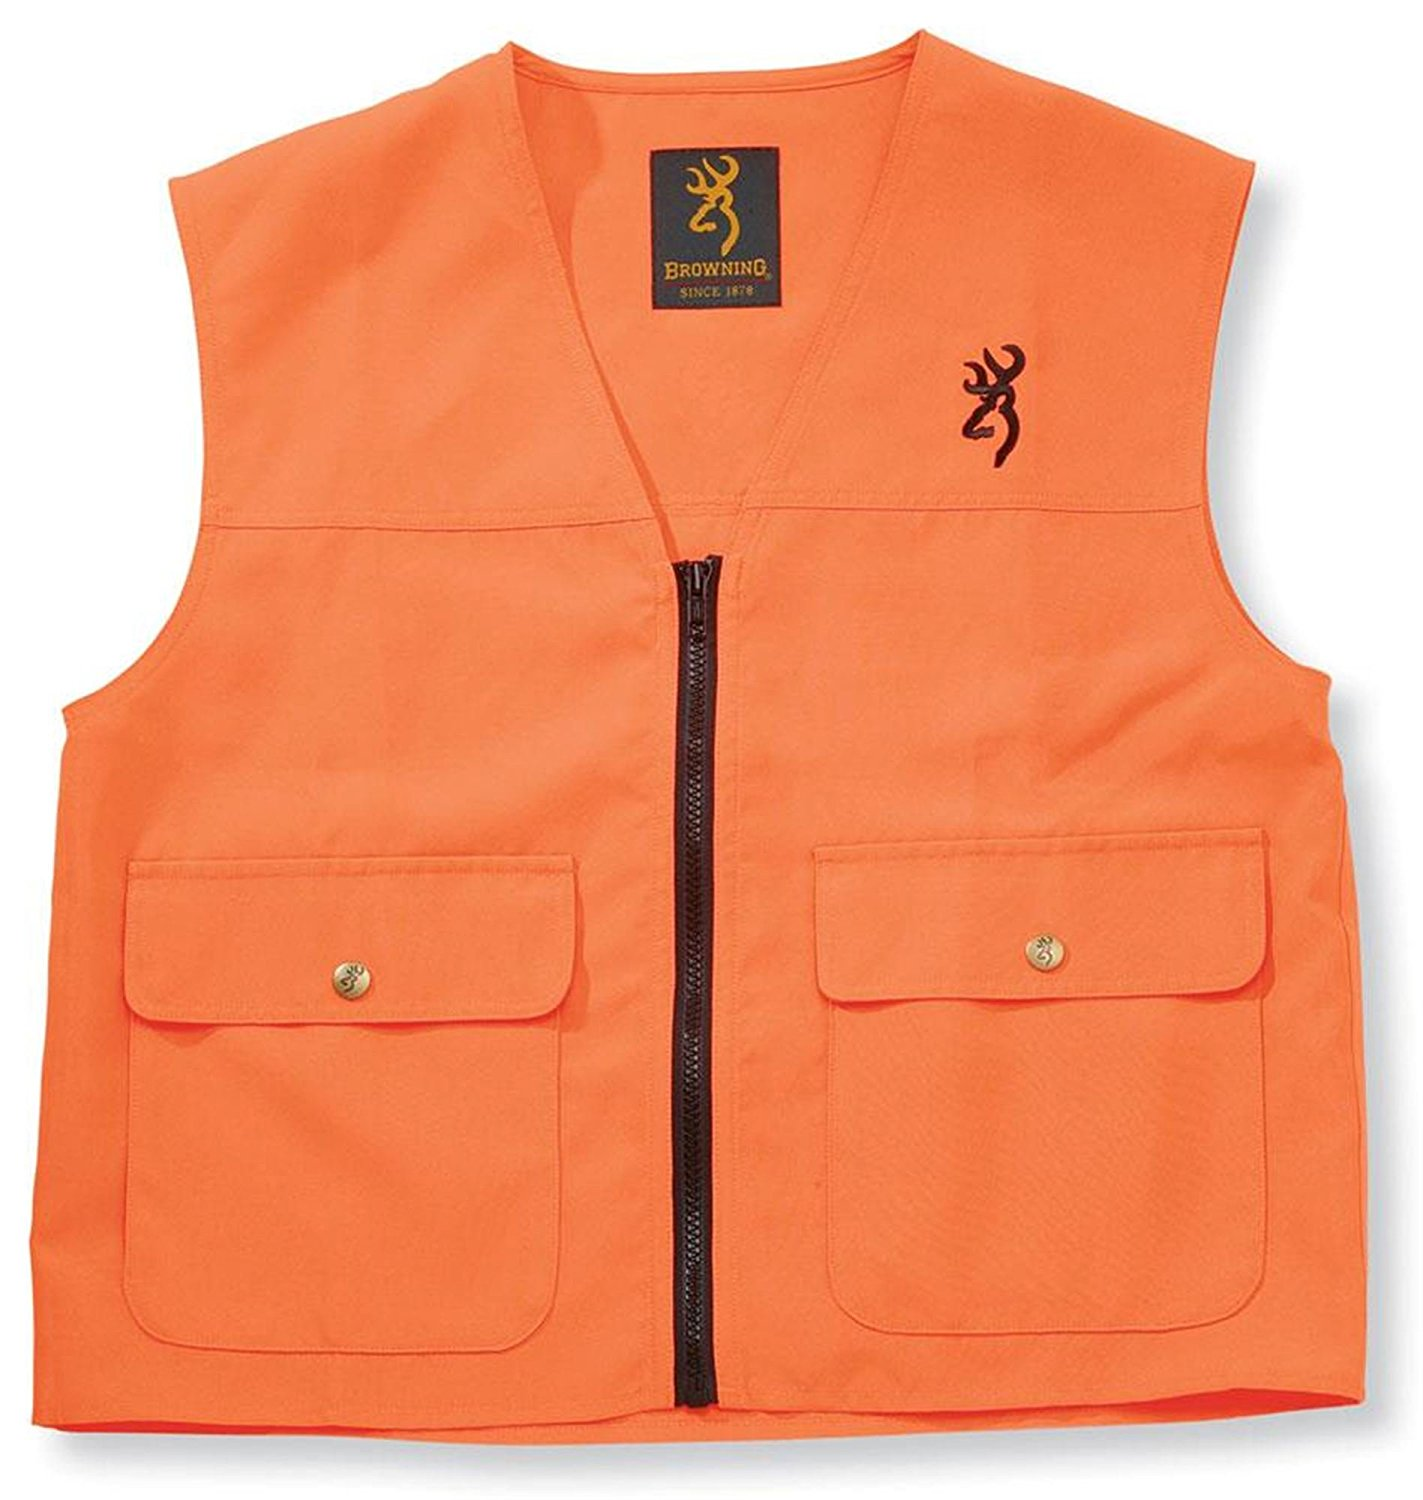 Junior Safety Vest, Blaze Large, Products designed in the USA with quality materials By Browning by